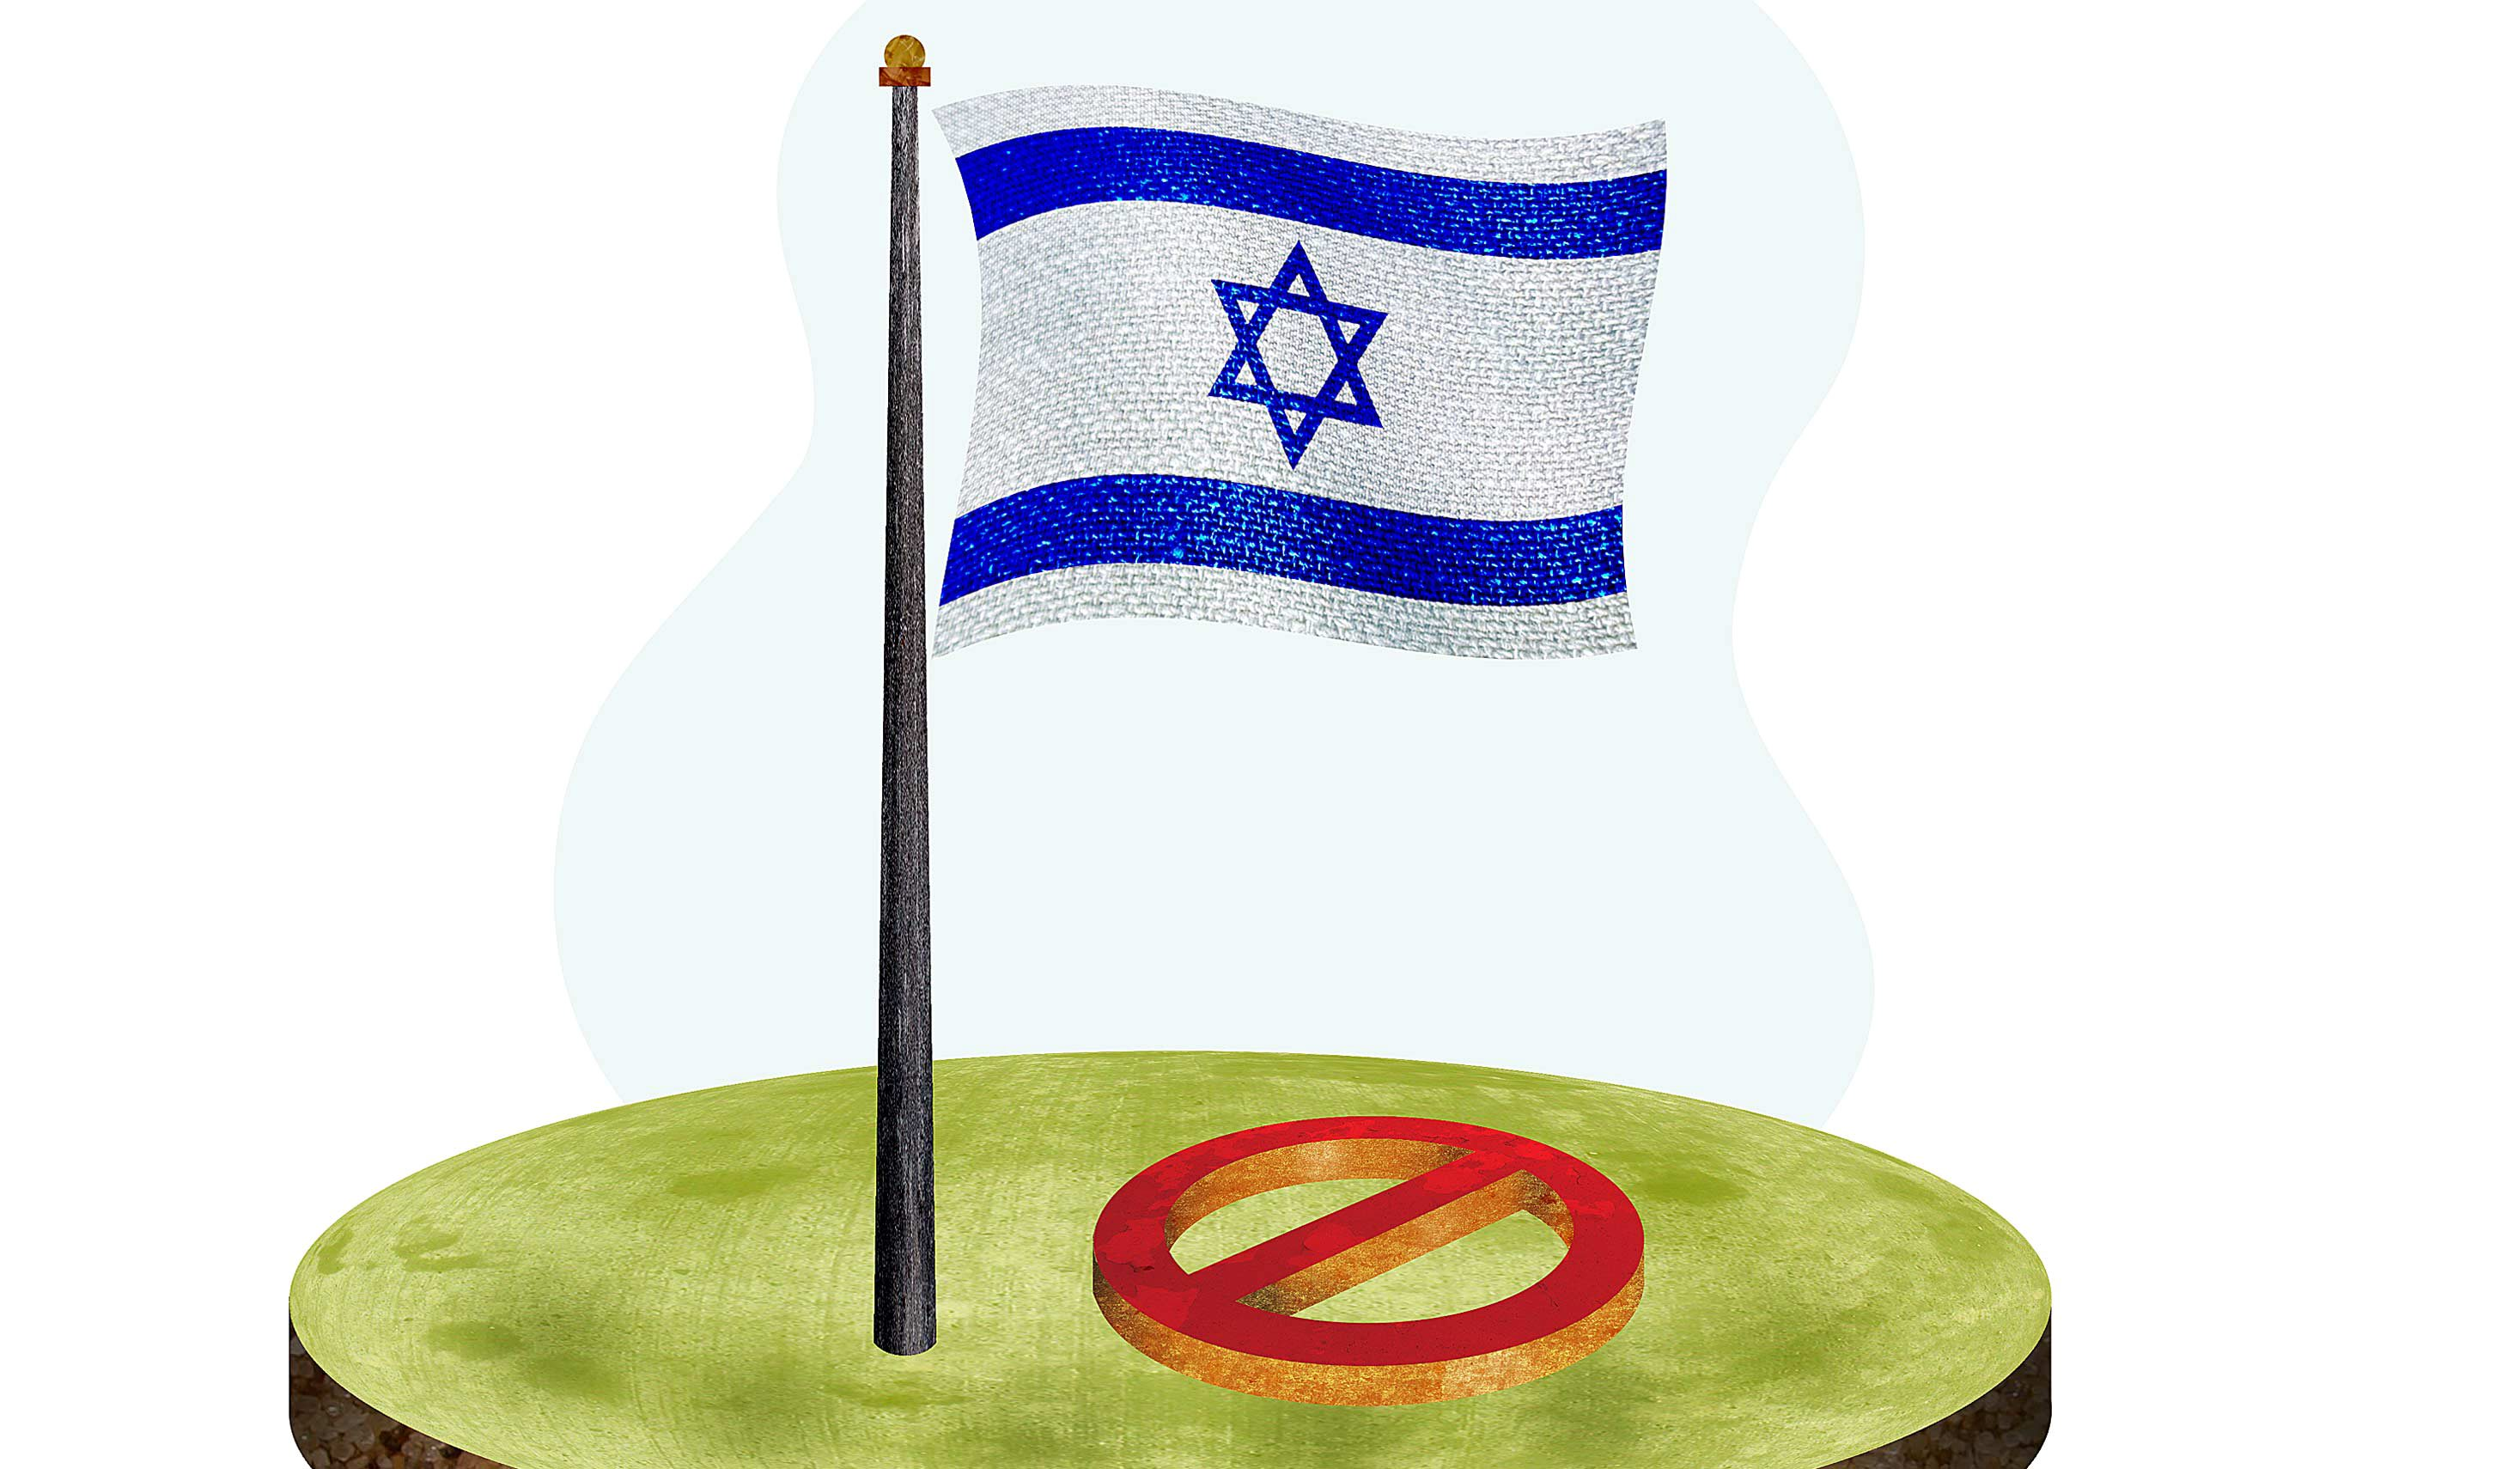 BDS hides behind free speech to dodge accountability